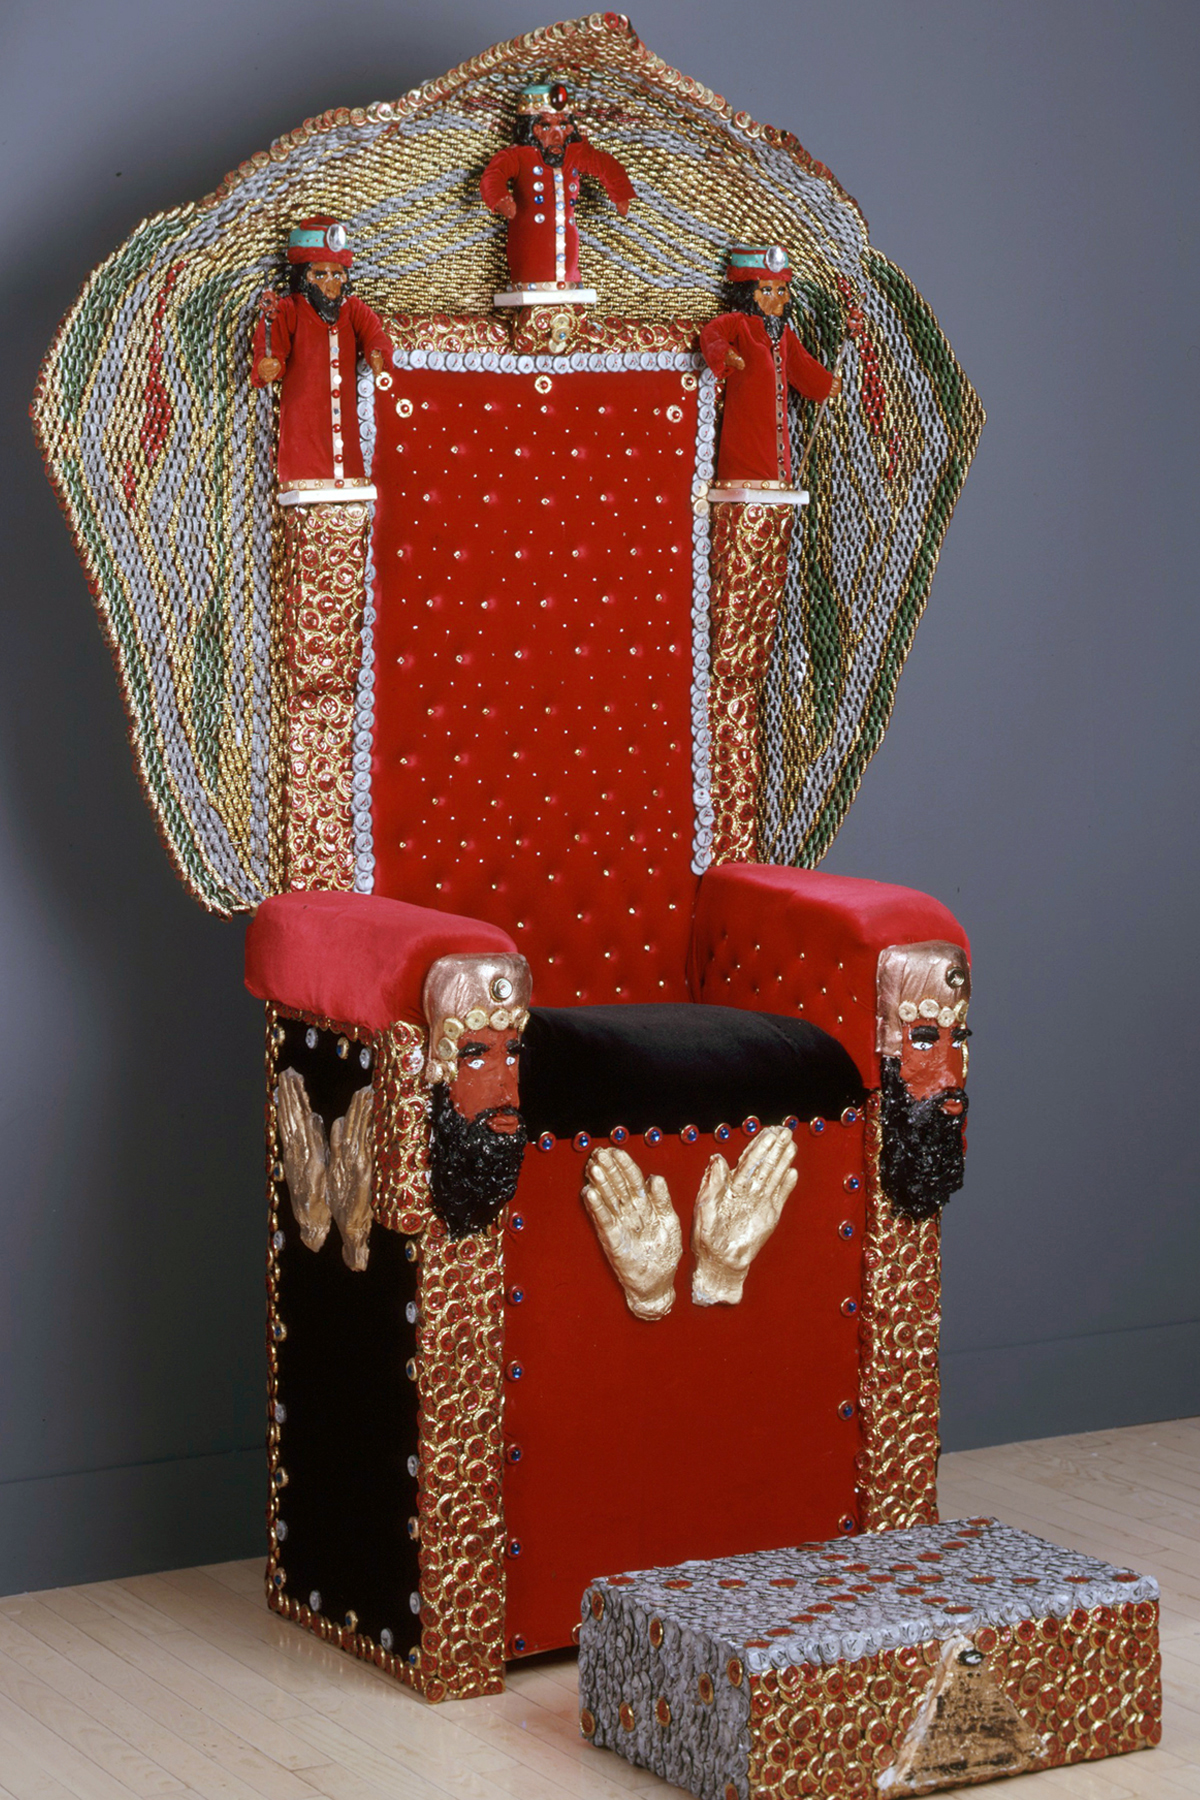 Mr-Imagination-Throne.jpg